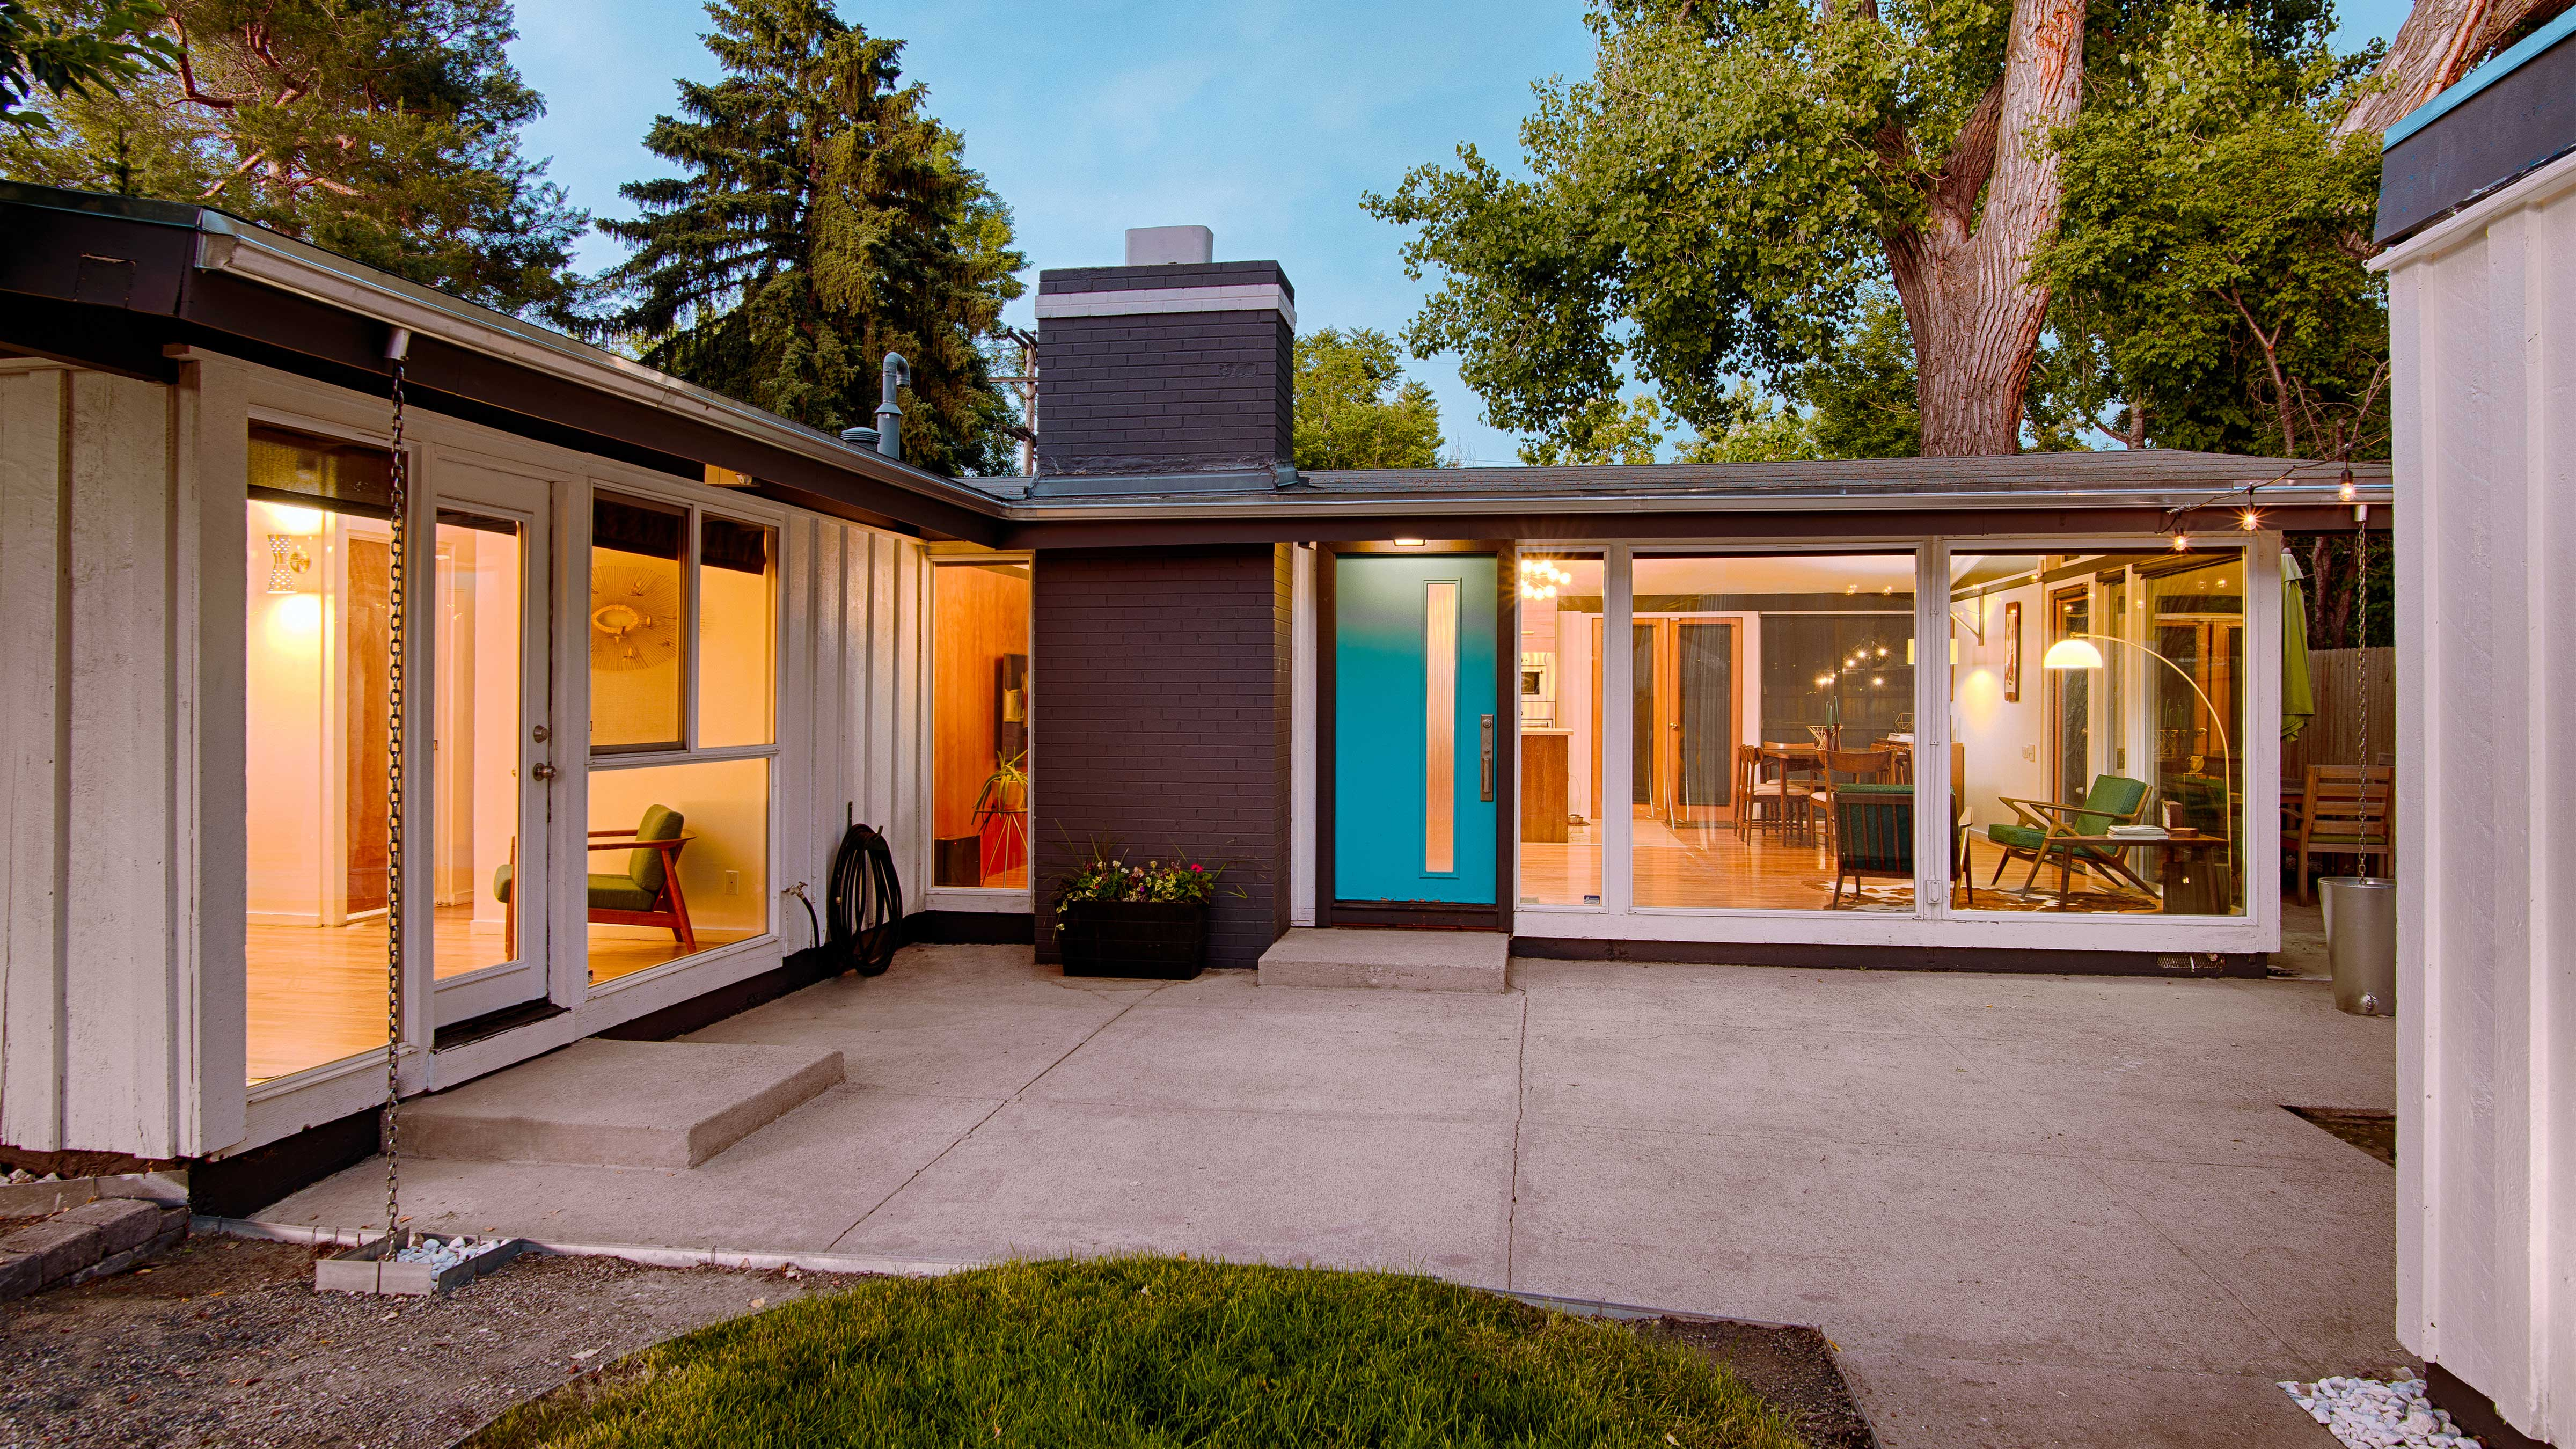 Mid-century modern home in Harvey Park, Denver, Colorado